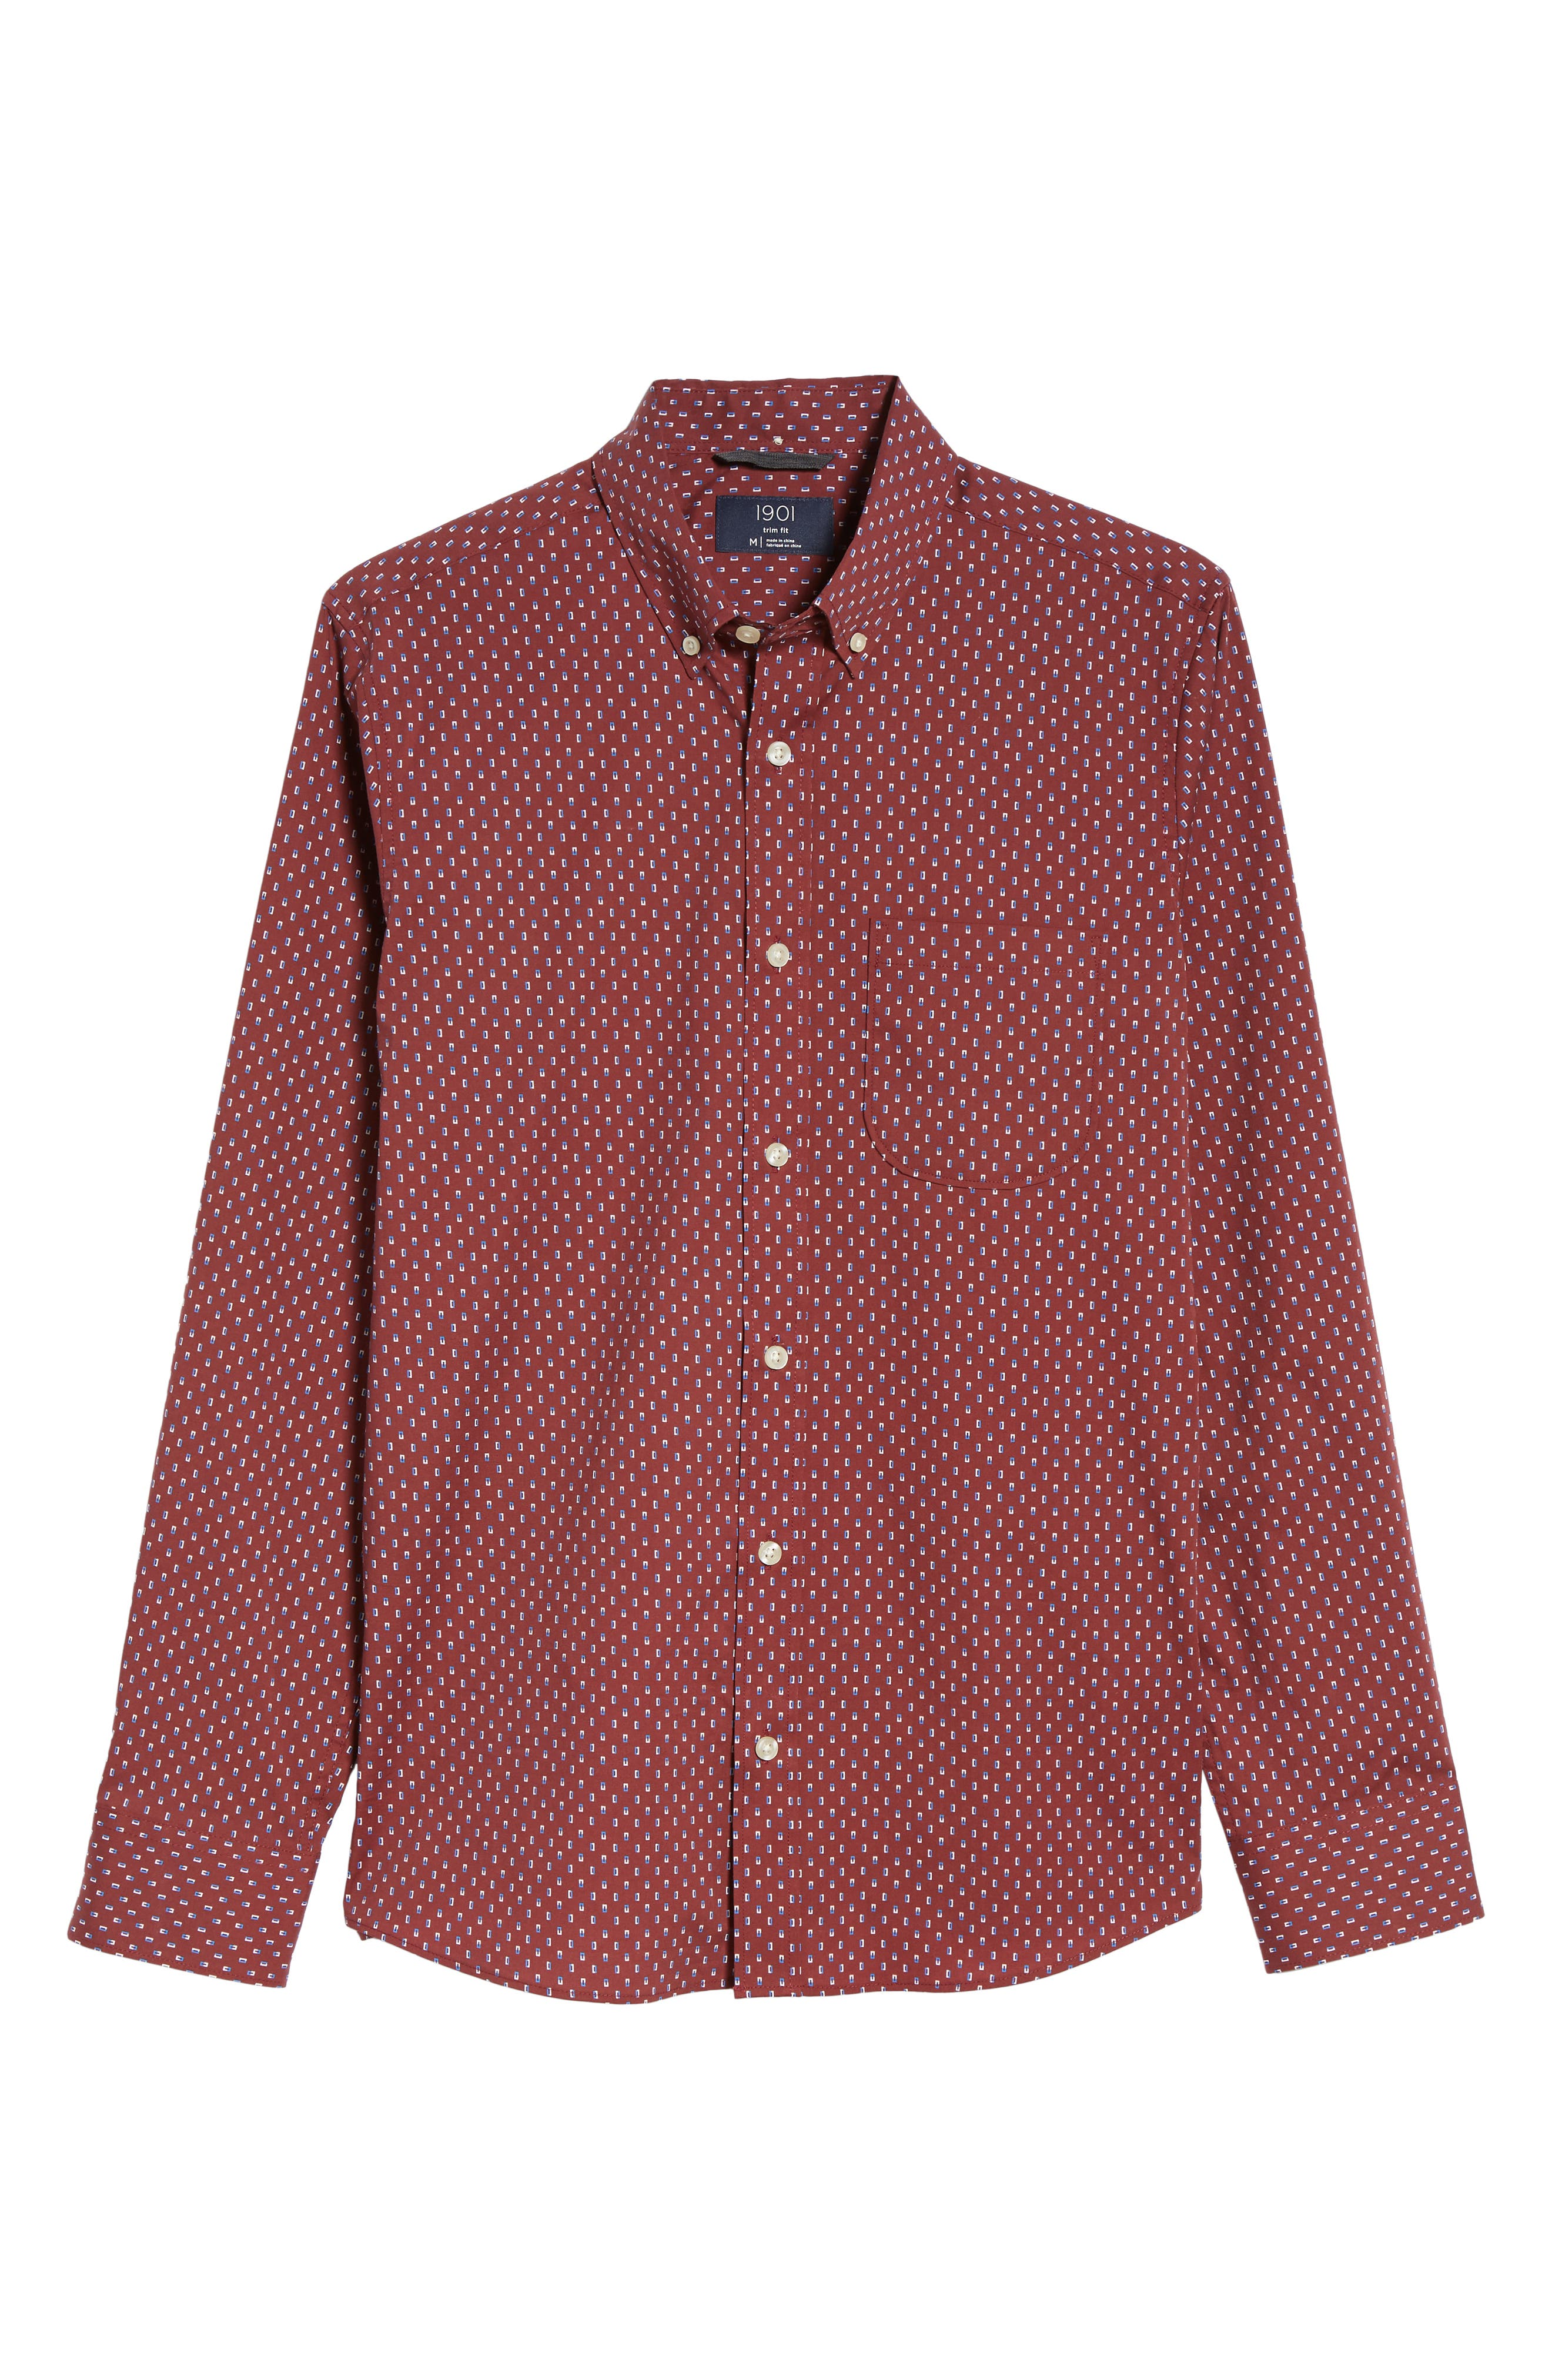 Trim Fit Box Print Sport Shirt,                             Alternate thumbnail 6, color,